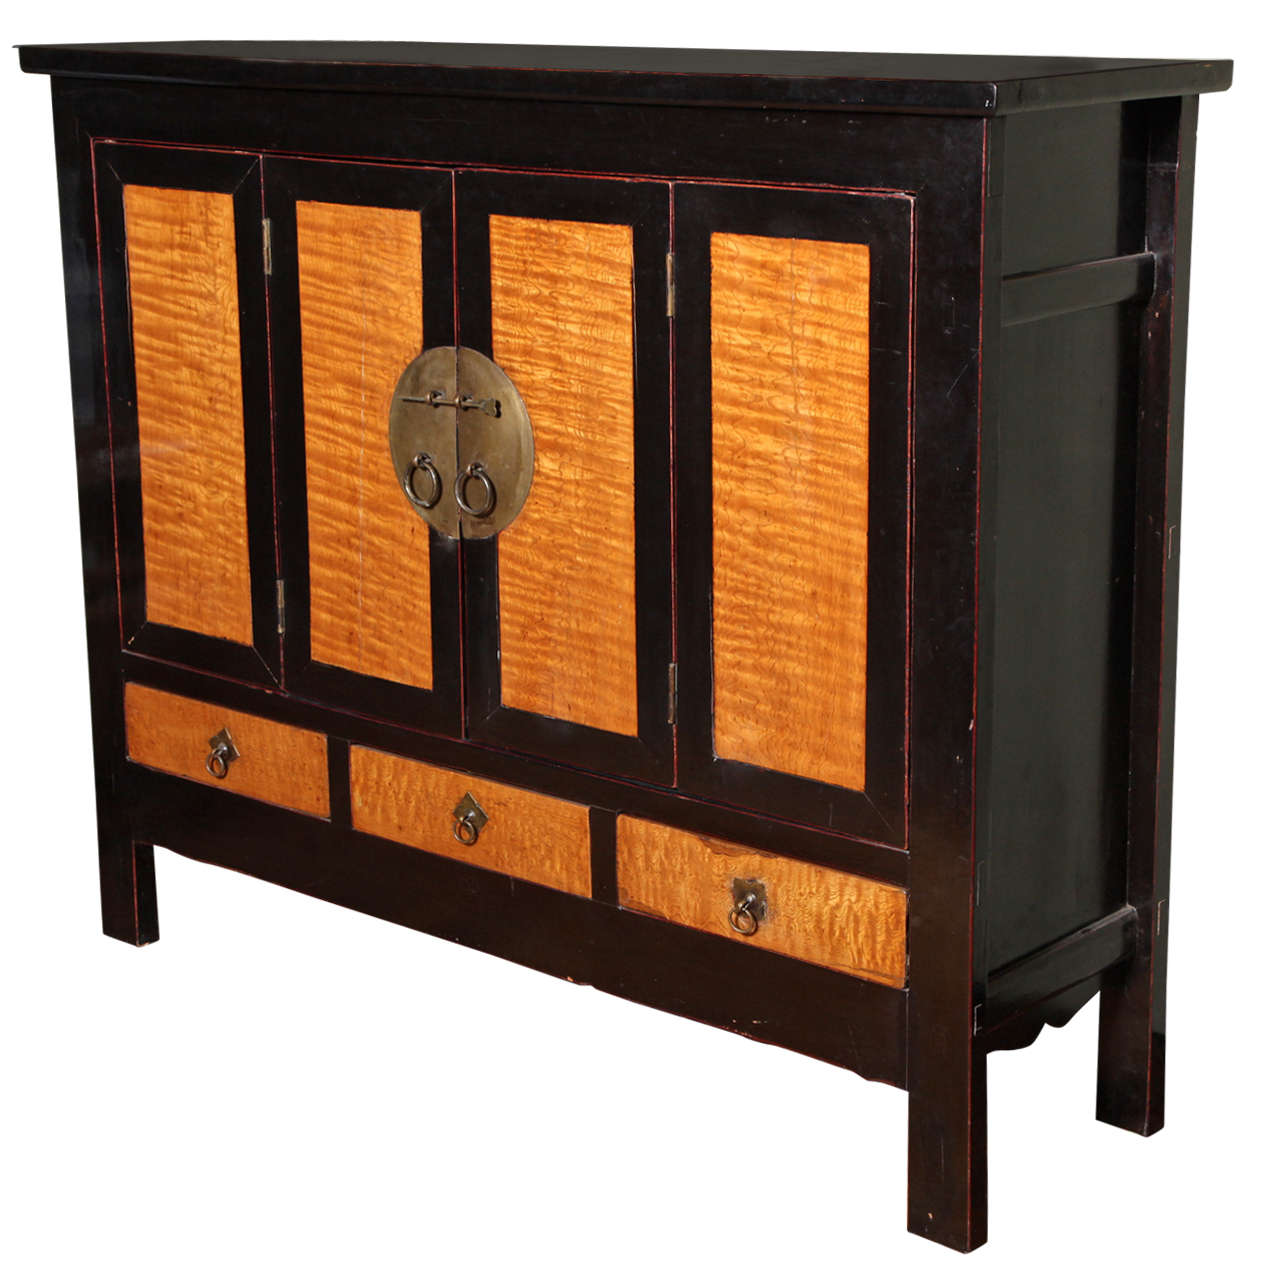 Marvelous Late Qing Dynasty Black Lacquer And Burl Wood Cabinet With Accordion Doors 1